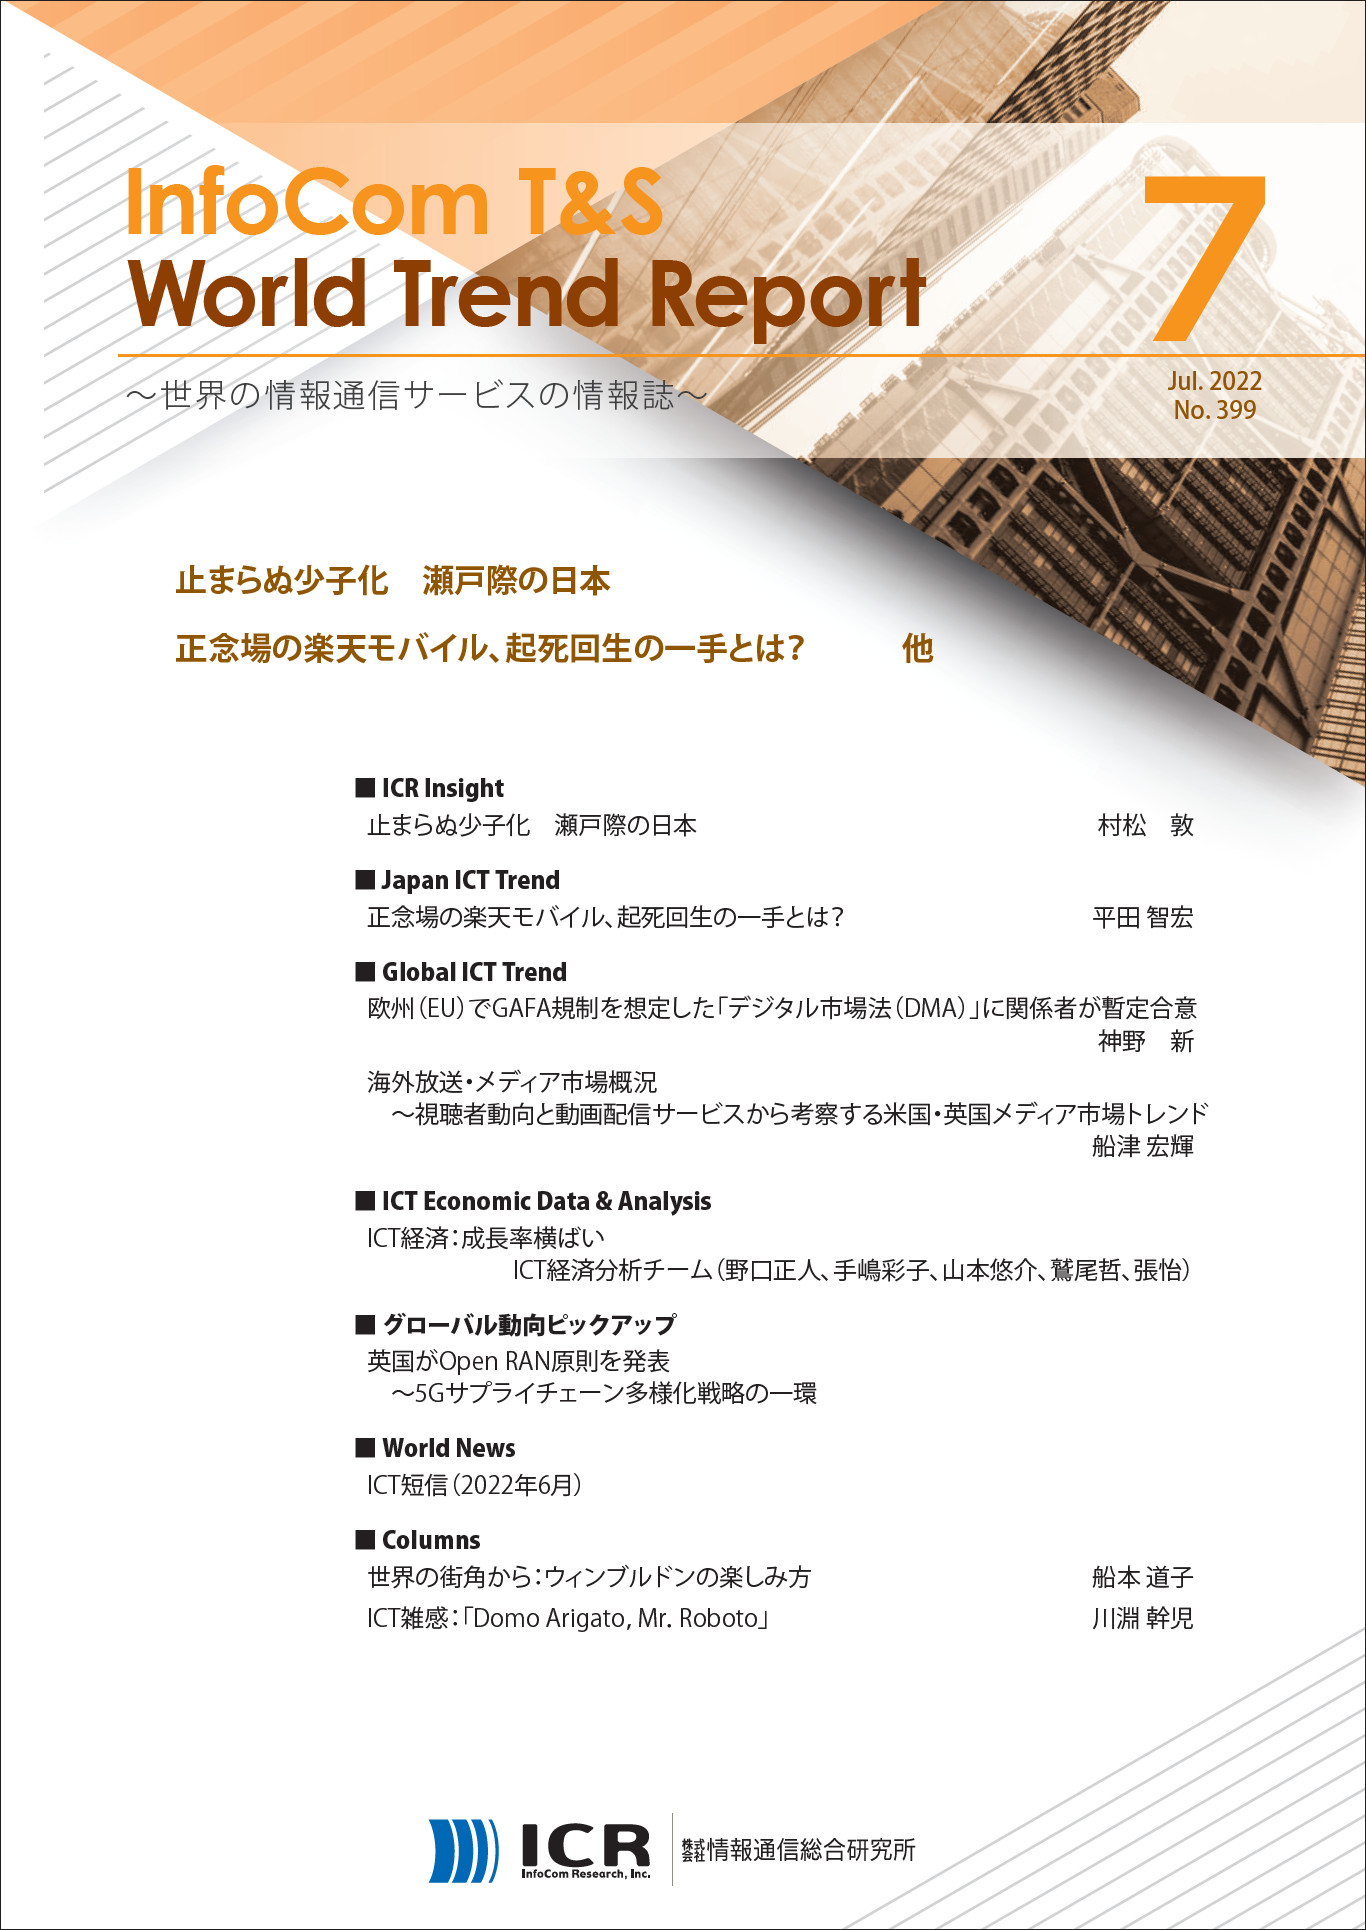 T&S World Trend Report